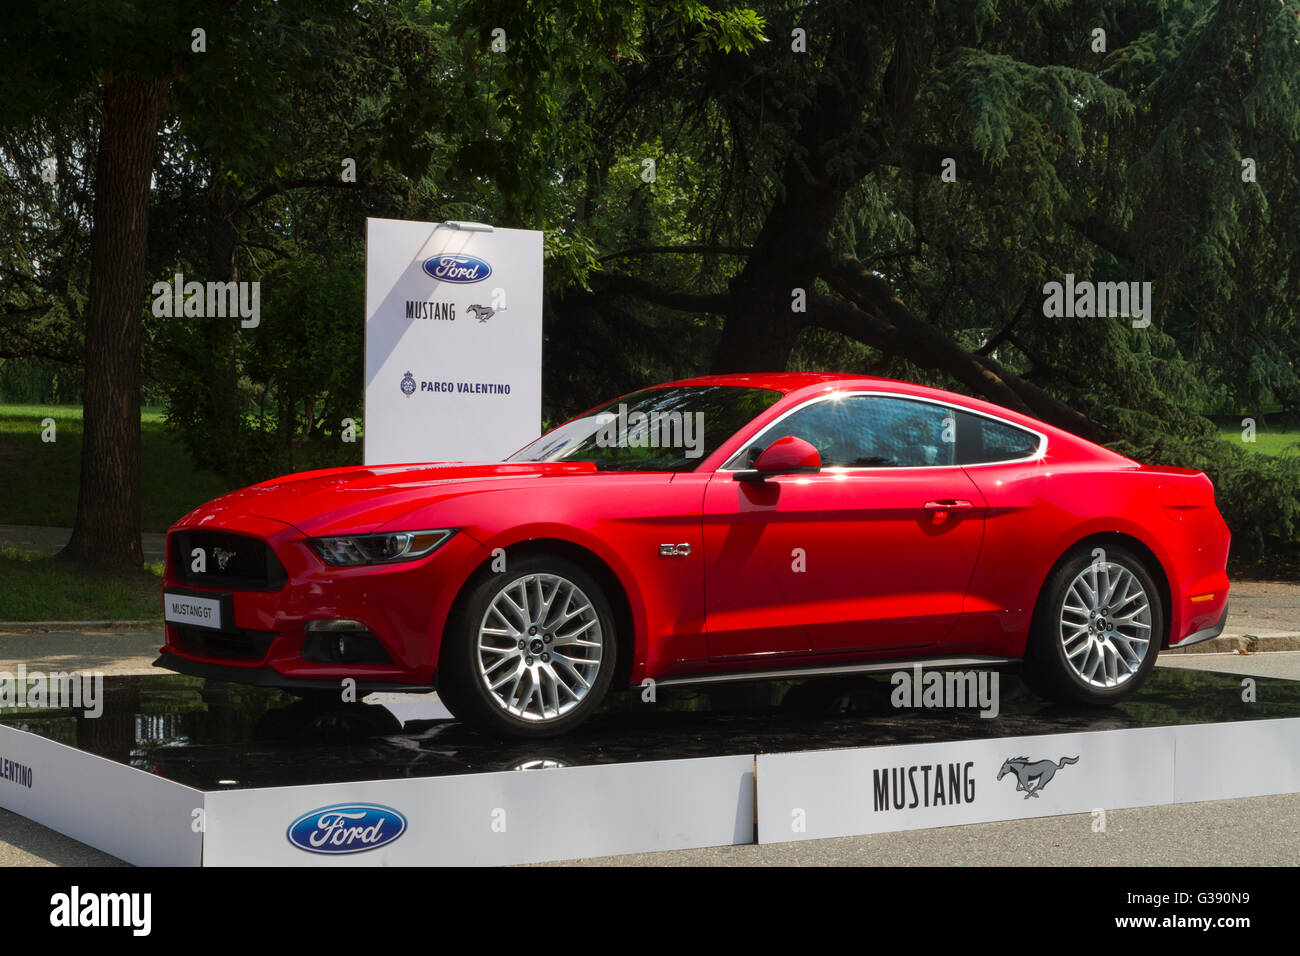 Turin, Italy. 08th June, 2016. A red Ford Mustang during the Parco ...